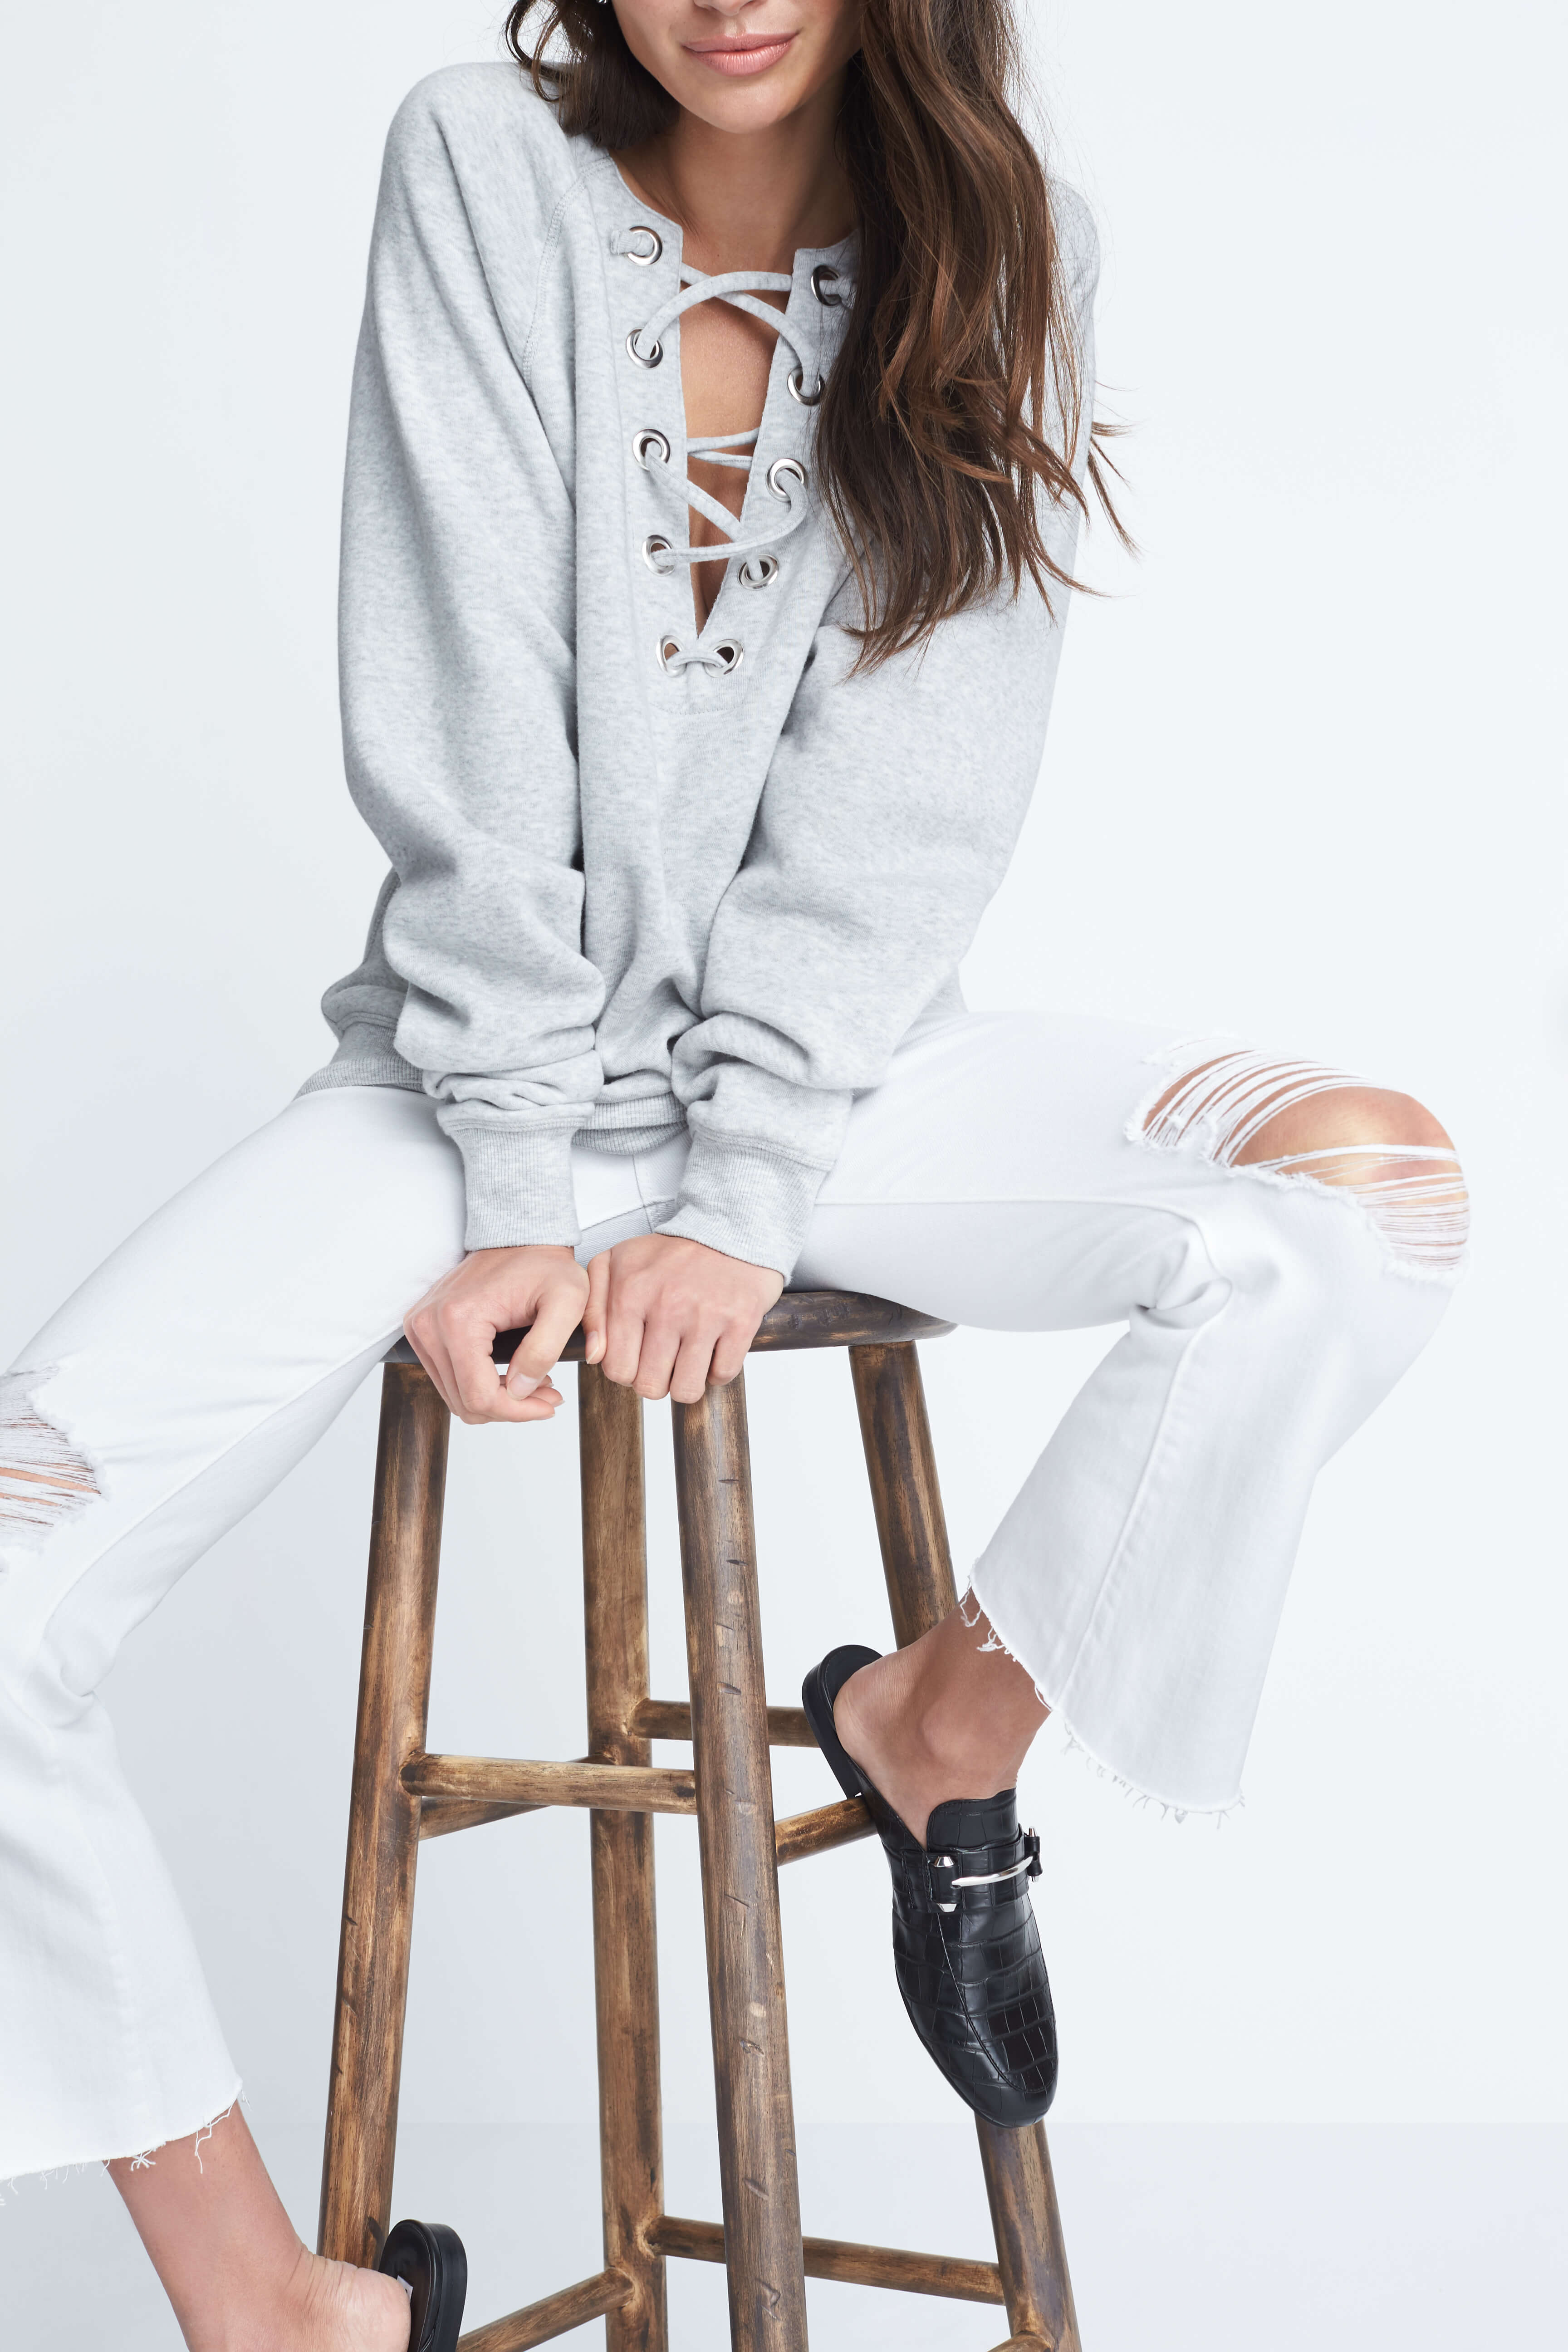 Wear White After Labor Day